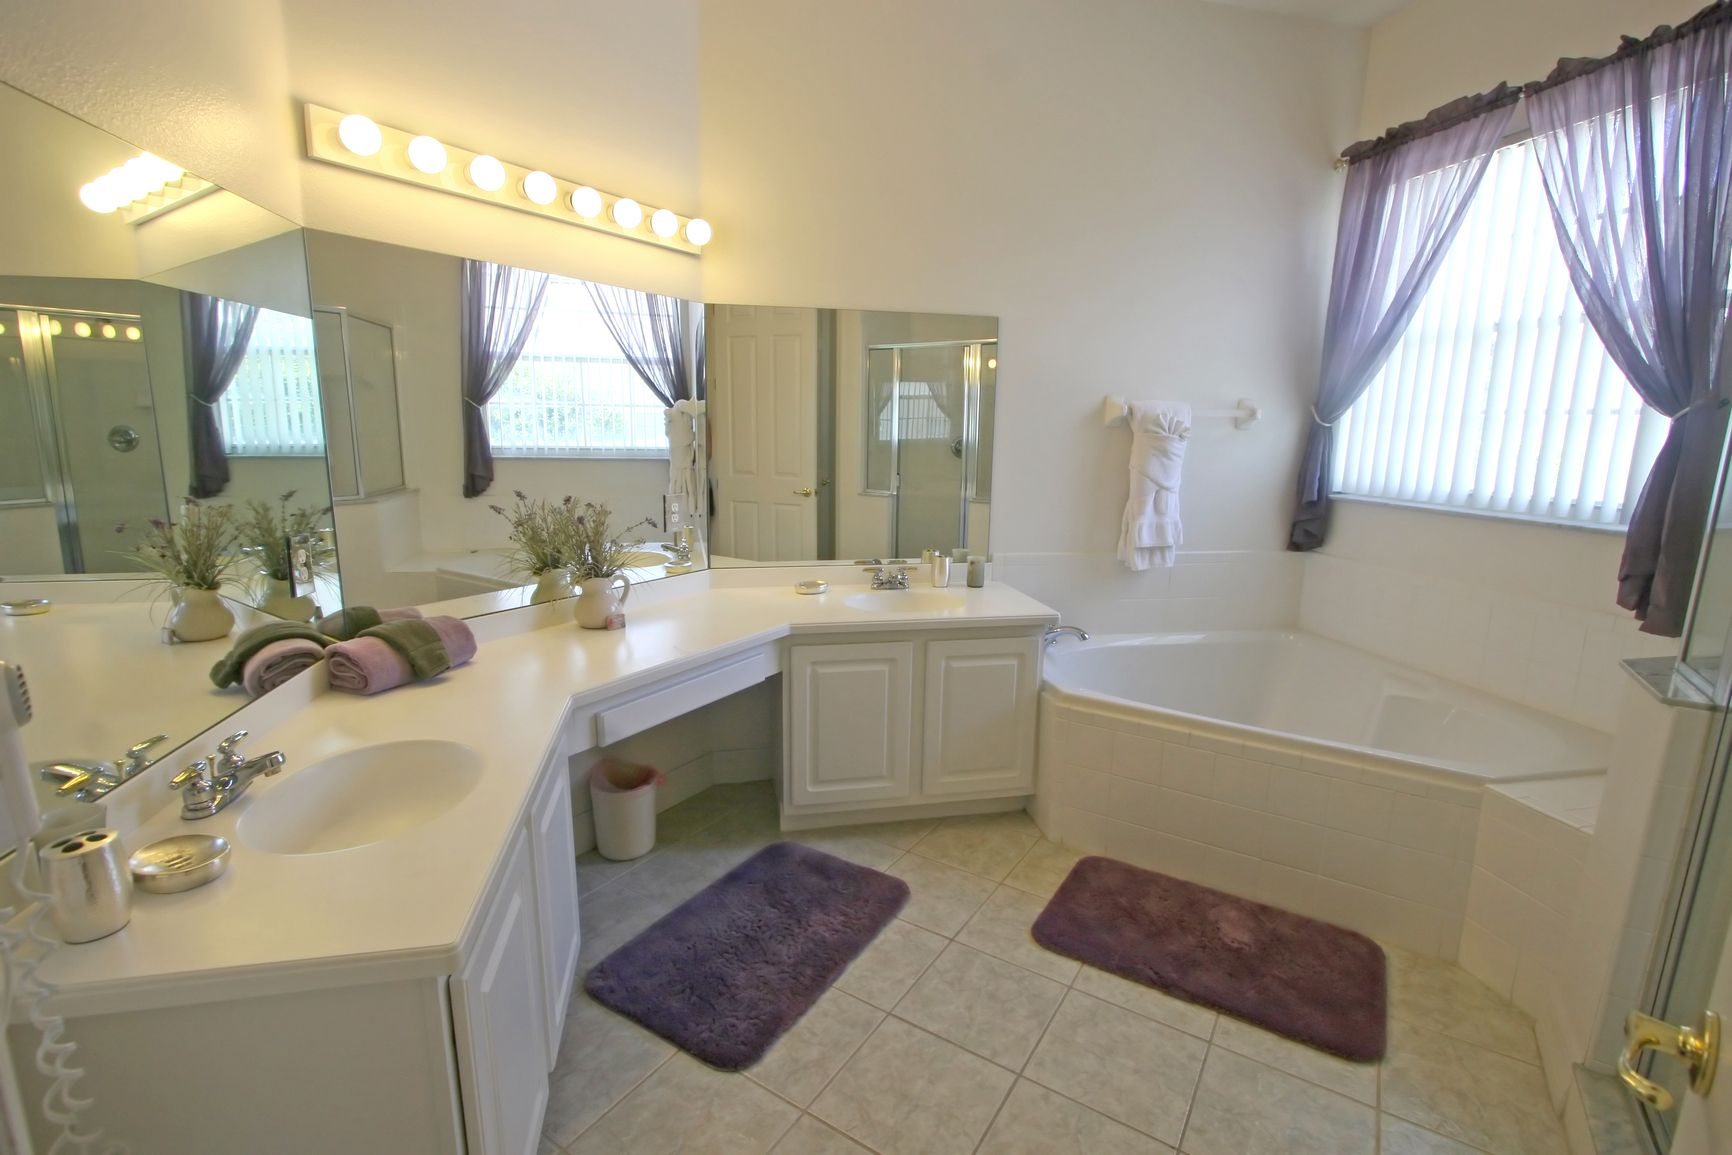 How Much Cost To Remodel Bathroom Property Images Of Remolded Mobile Homesw  Mobile Home Mobile Home .